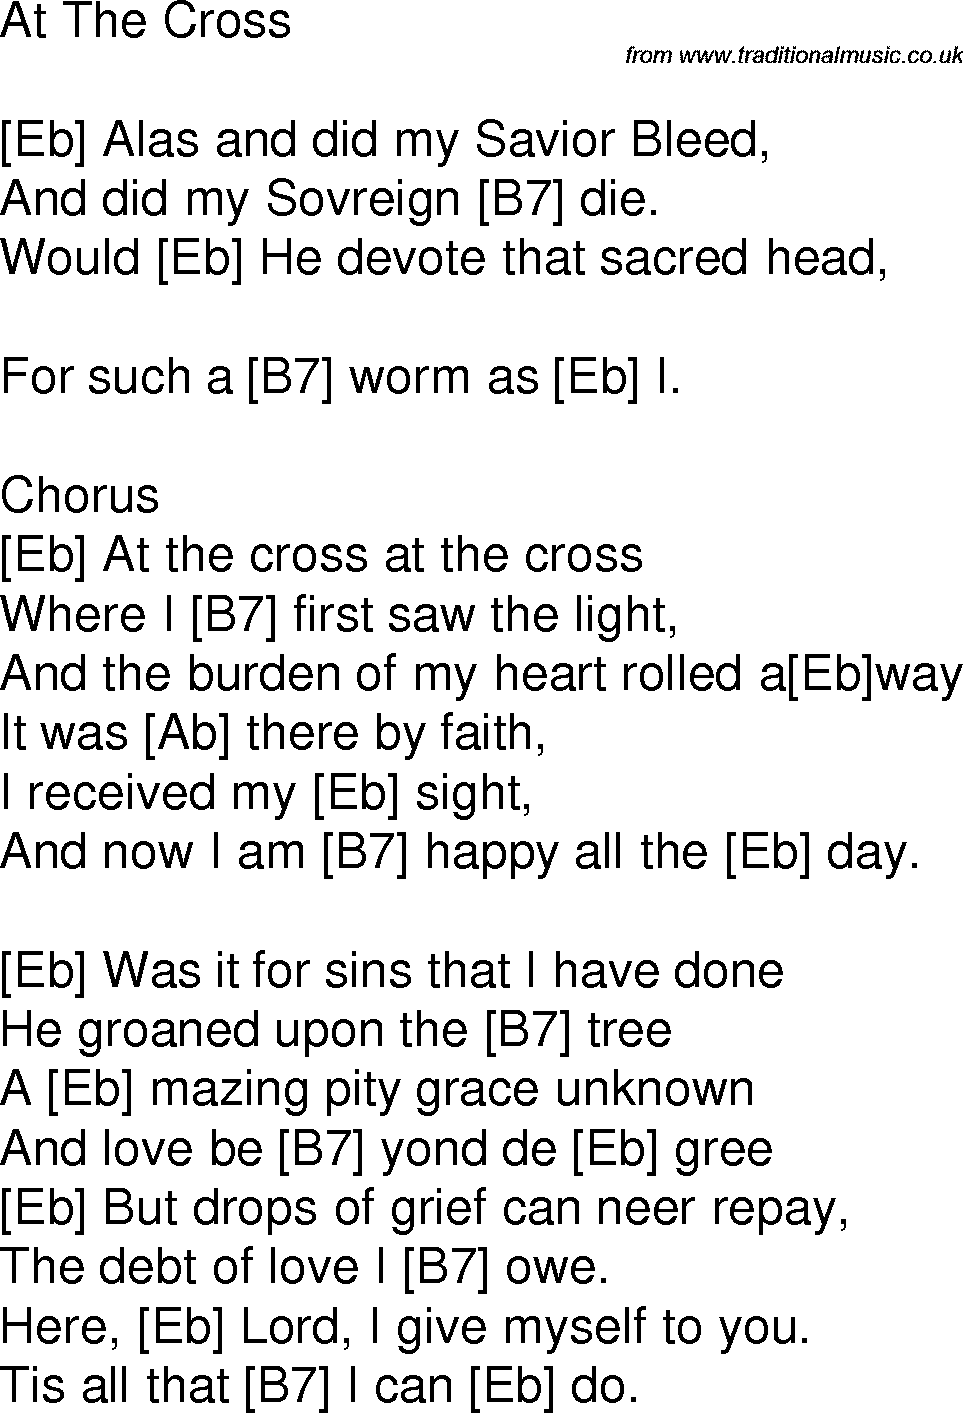 Old Time Song Lyrics With Chords For At The Cross Eb Chords